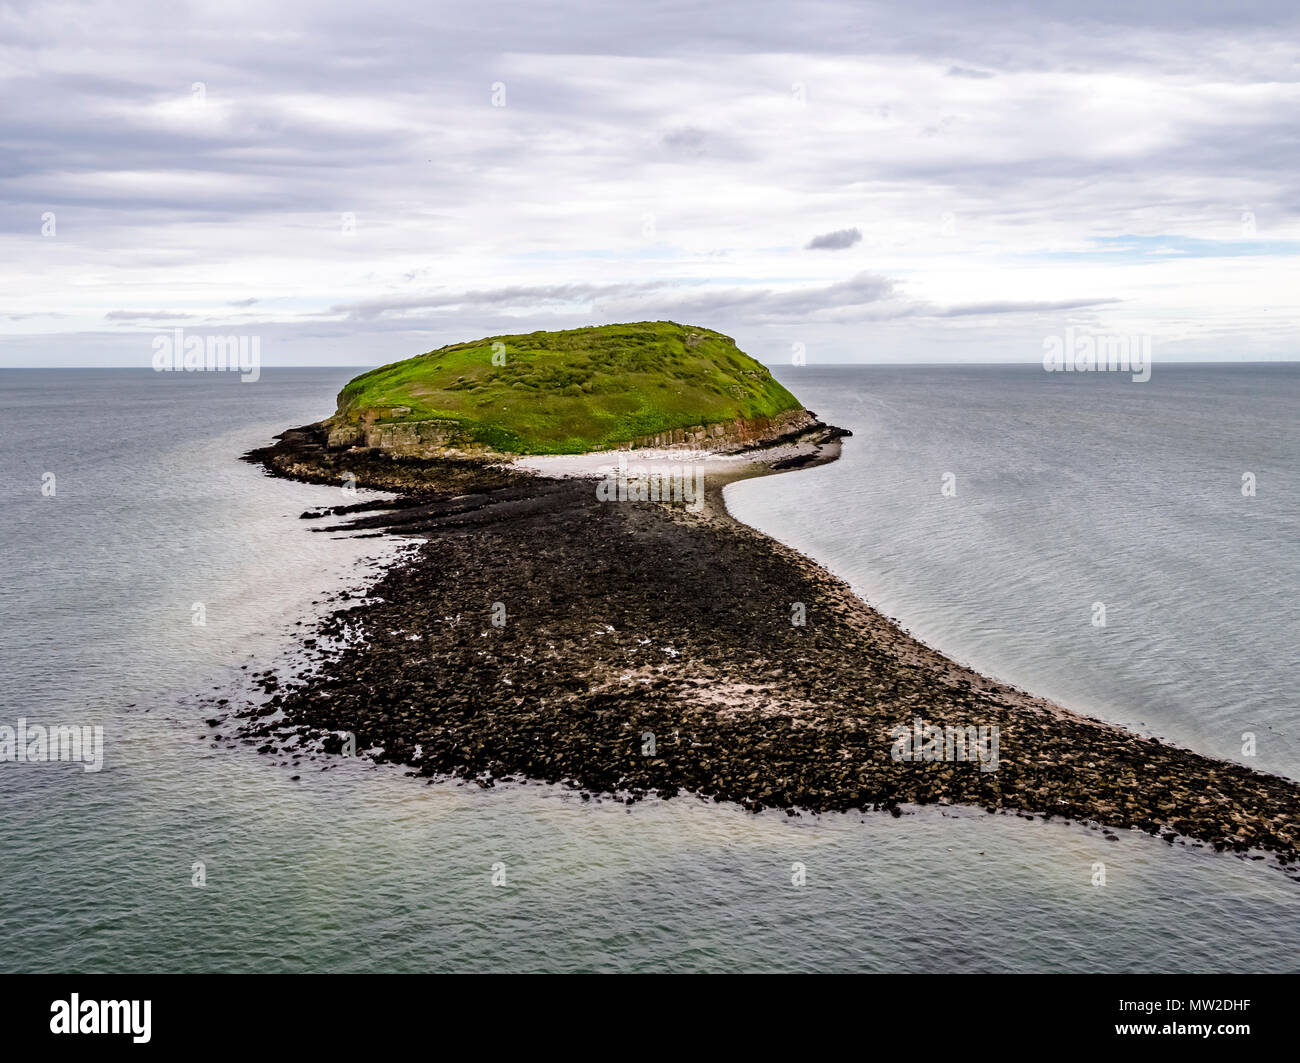 Aerial view of puffin island - Wales - United Kingdom. - Stock Image